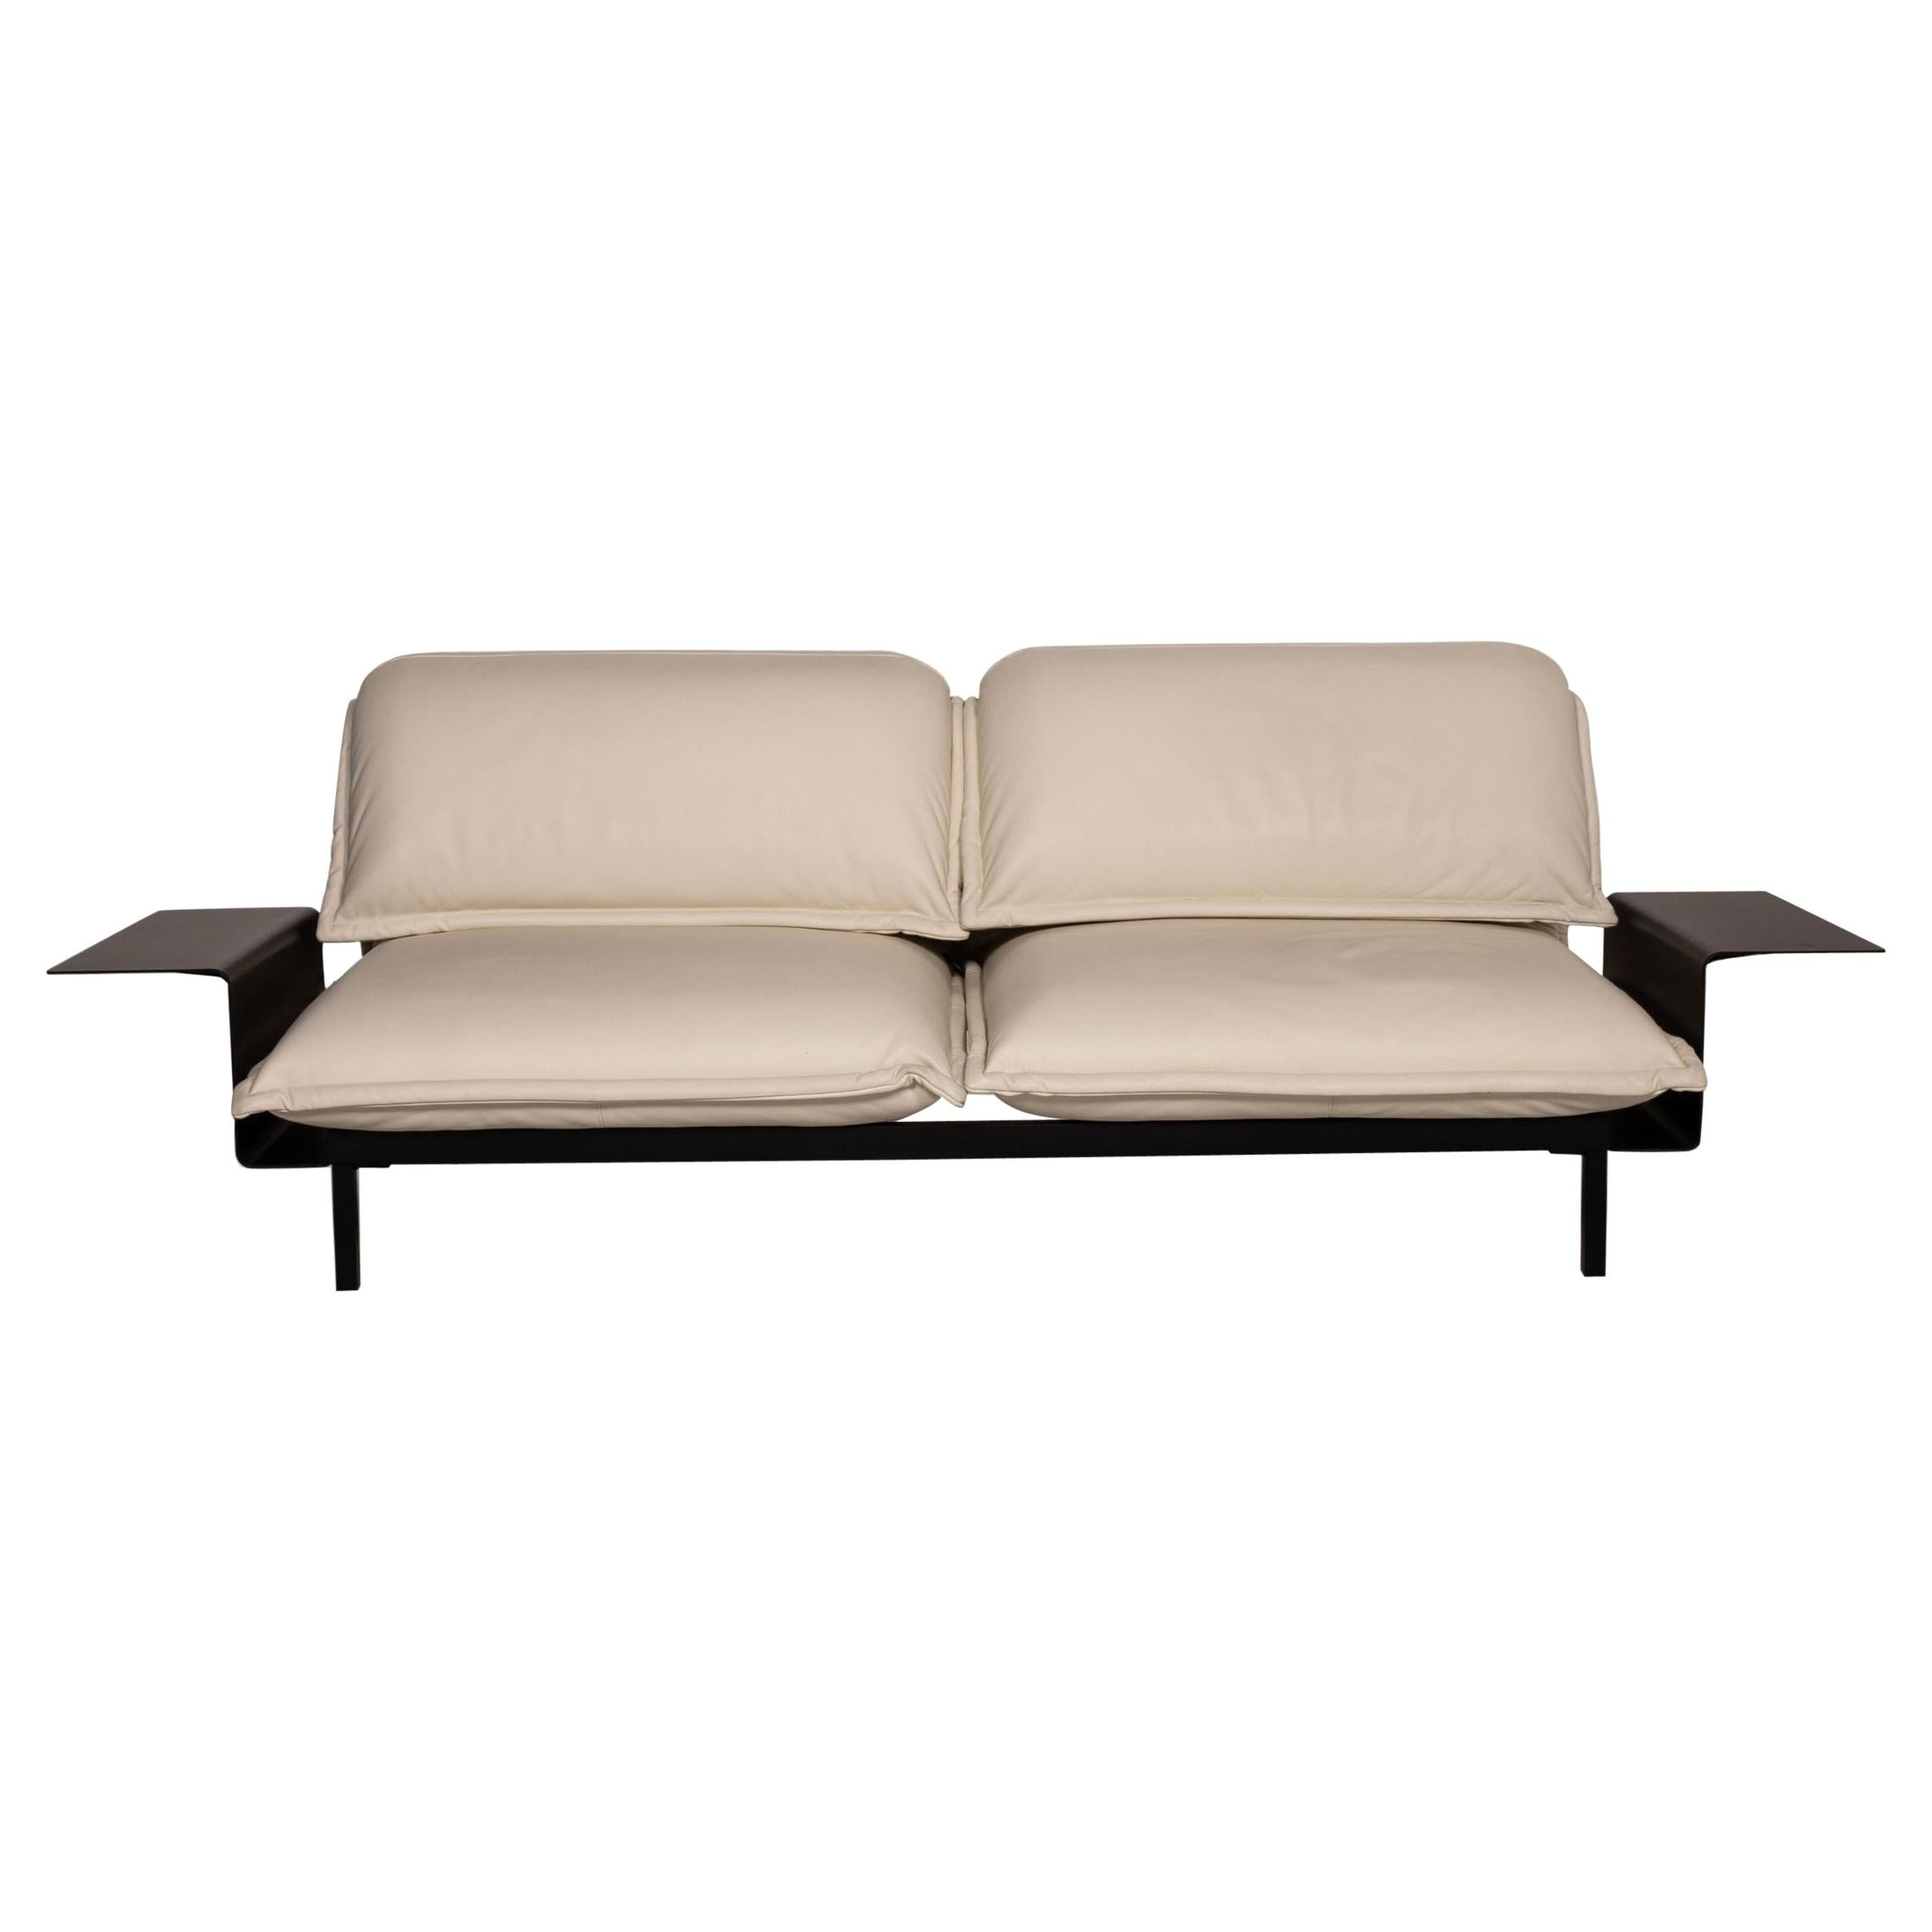 Rolf Benz Nova Two-Seater Sofa Cream Leather Function Couch